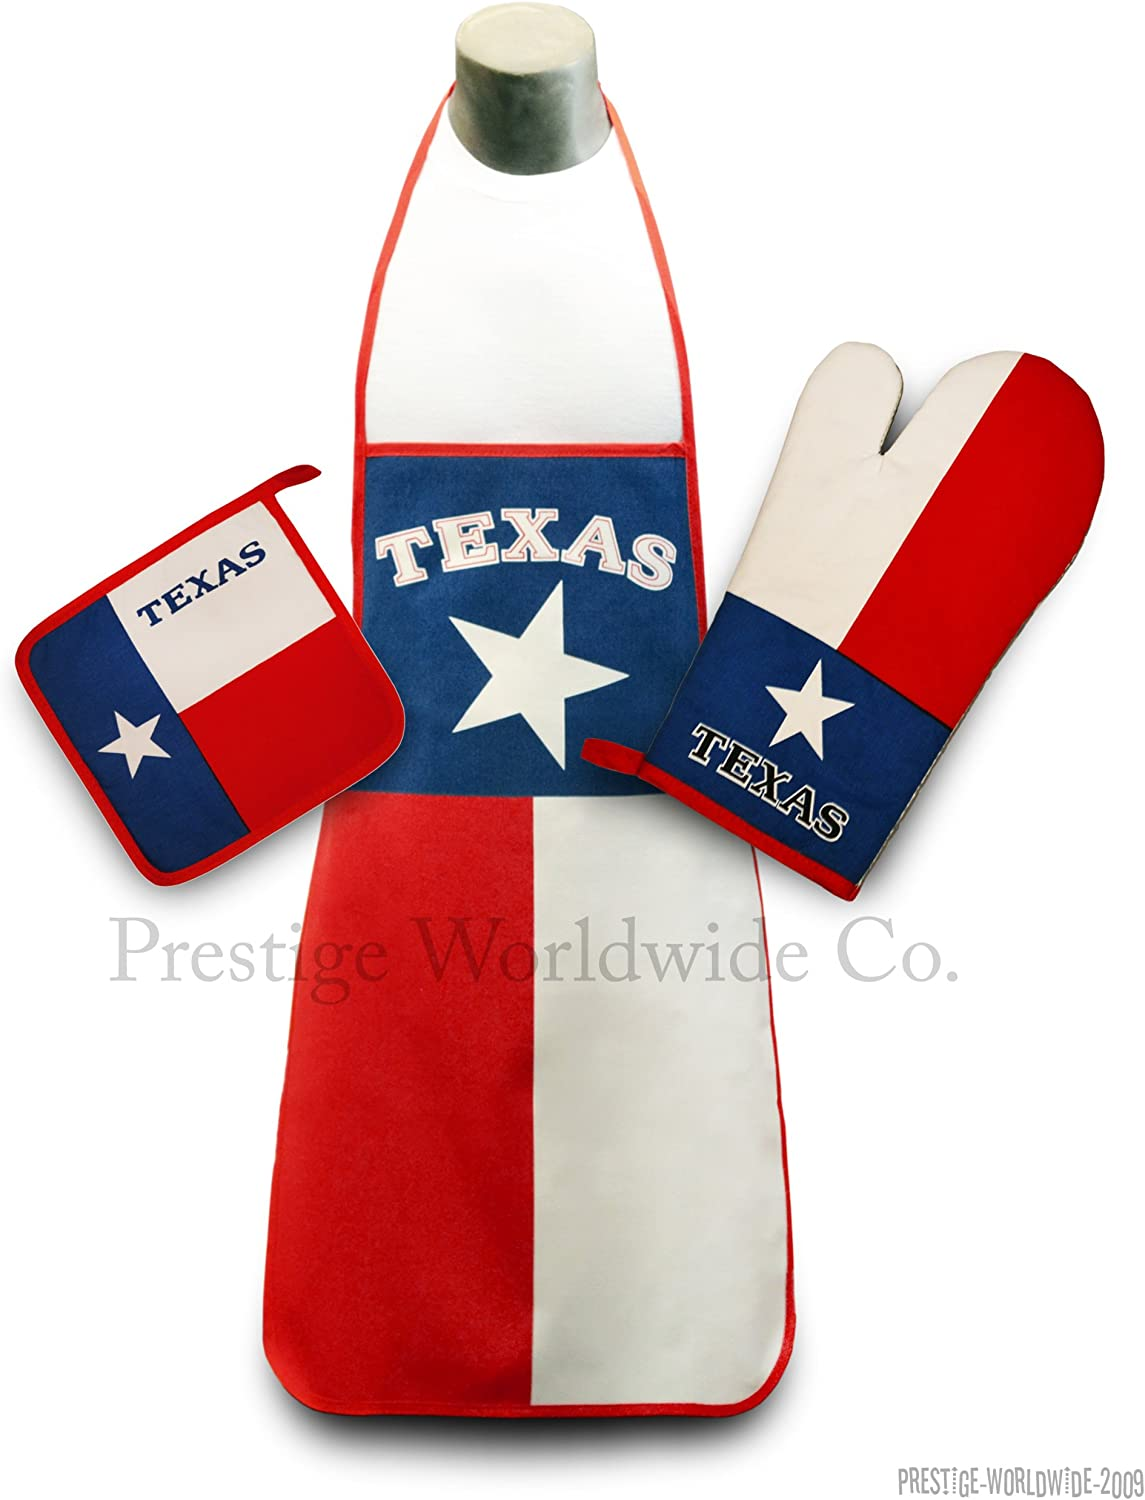 Texas State Flag Kitchen & BBQ Set *New* with Apron, Oven-mitt and Pot-holder Longhorns Texans